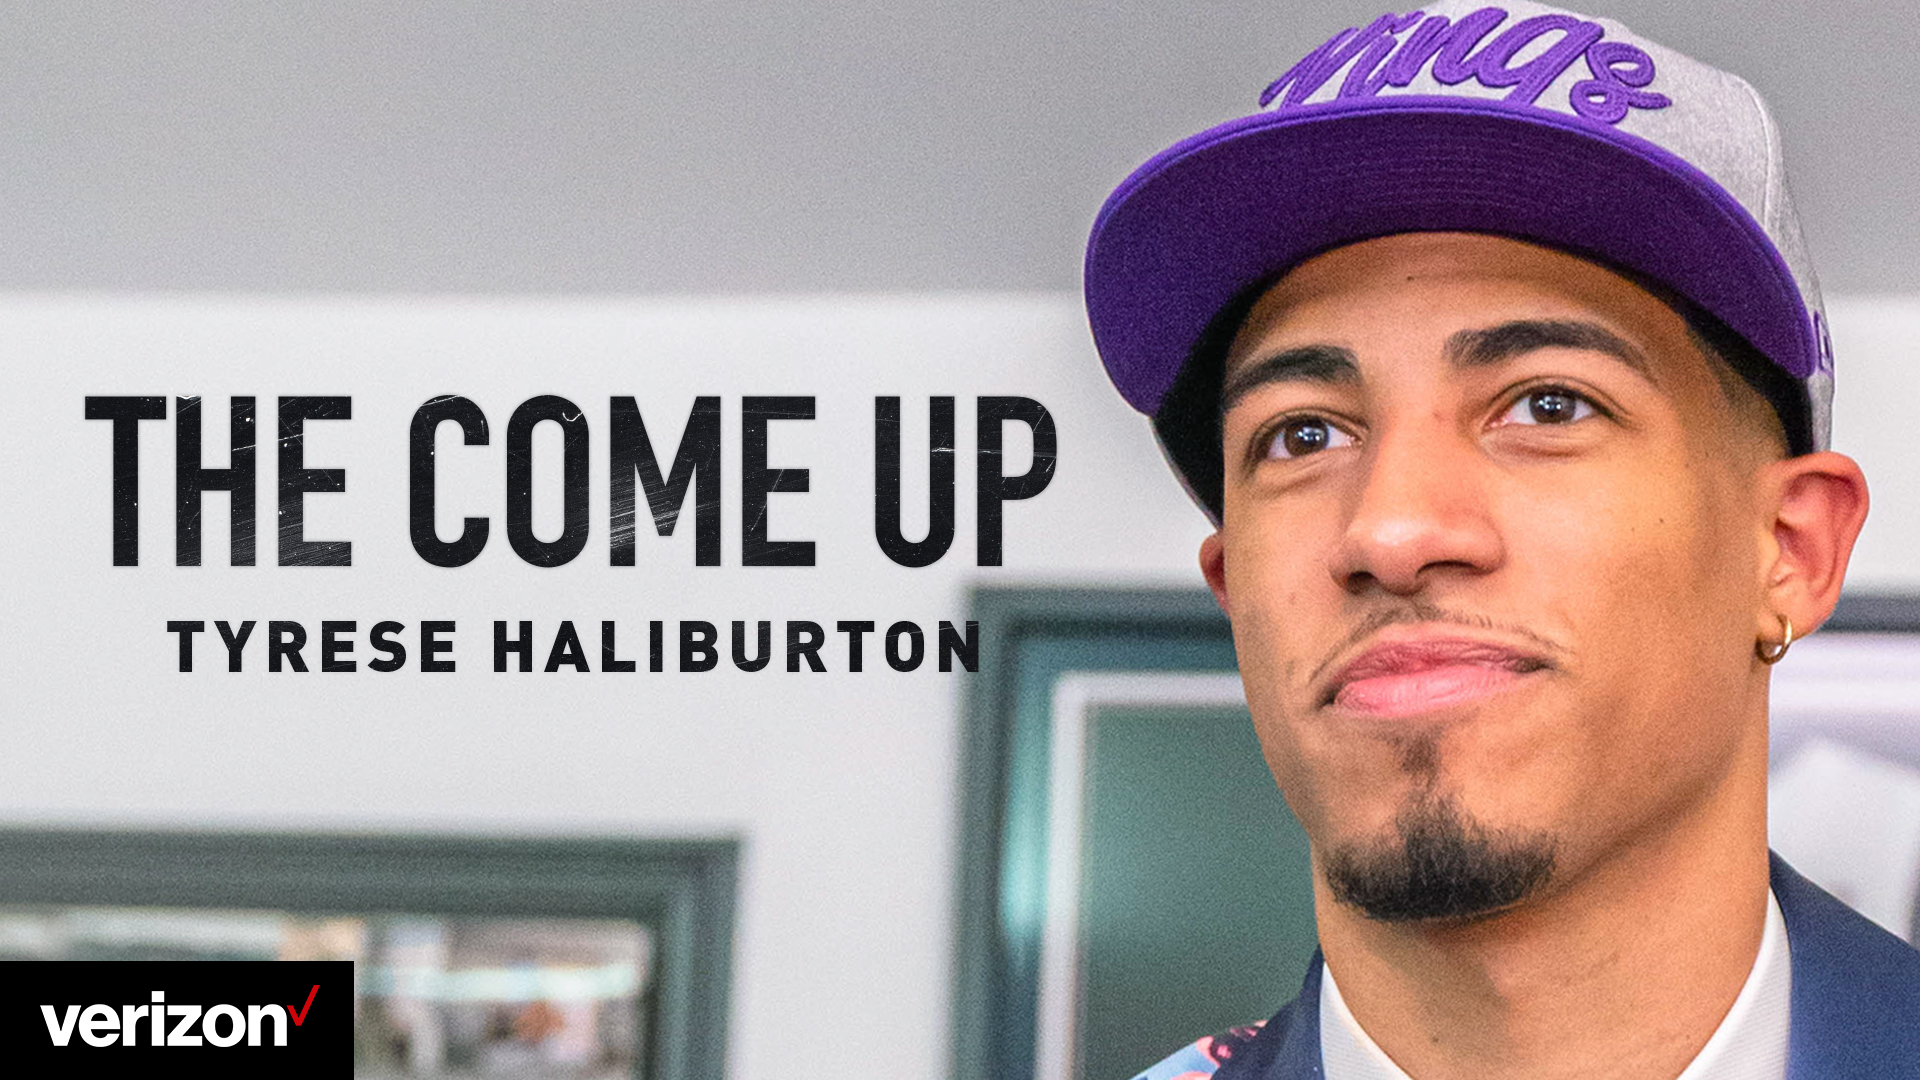 The Come Up: The Tyrese Haliburton Story   Episode 1